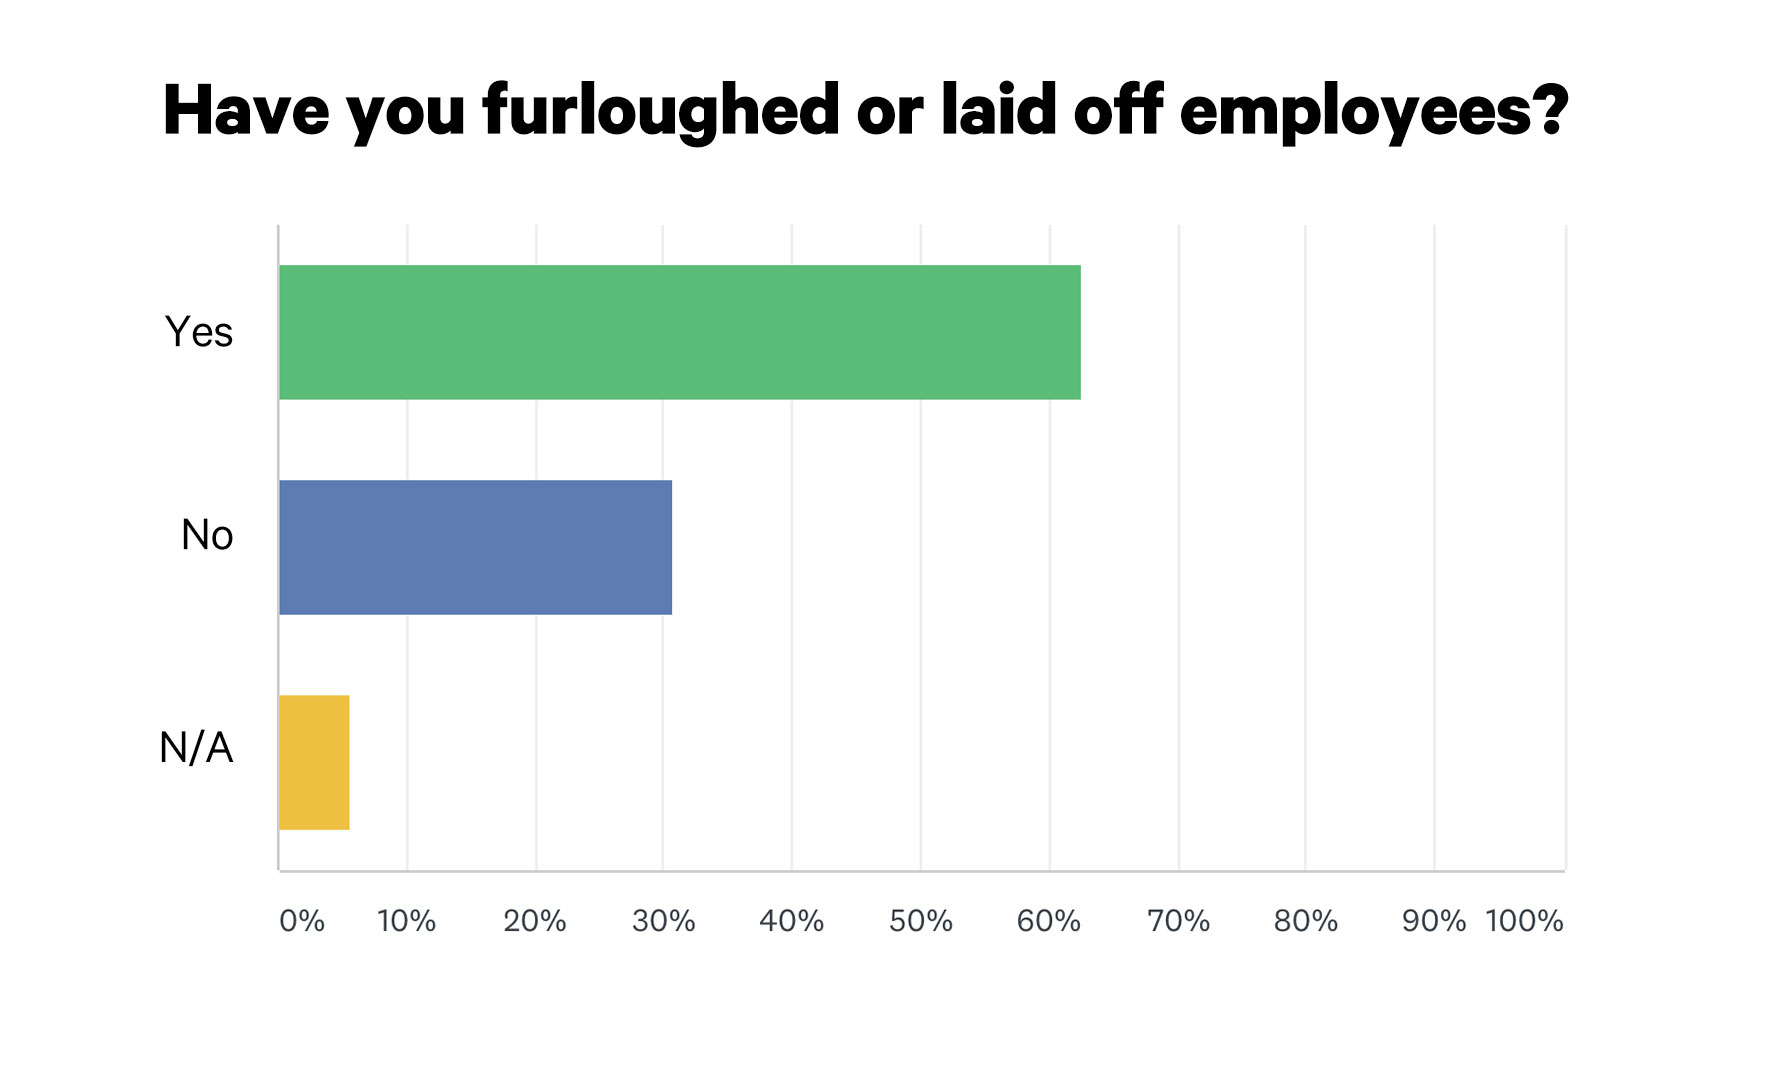 Nearly Two-Thirds of ECP Biz Owners Have Furloughed or Laid Off Employees